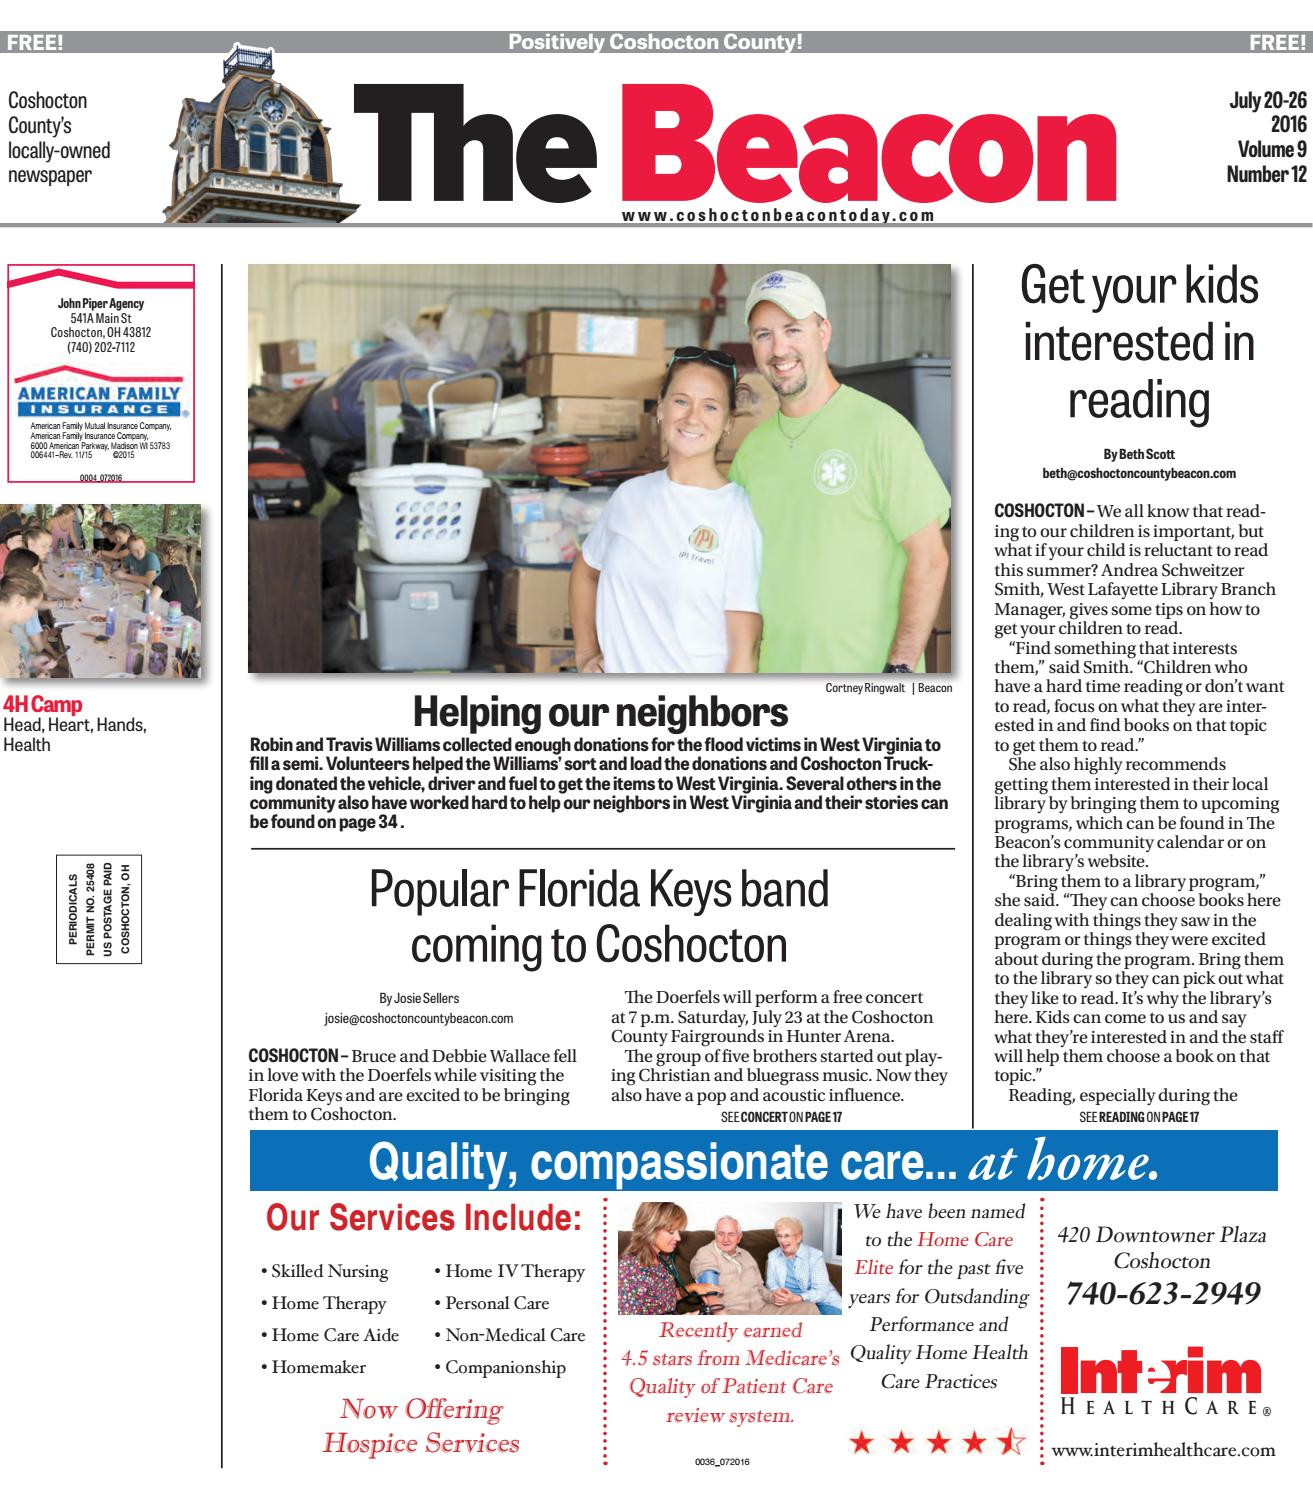 July 20 2016 Coshocton County Beacon